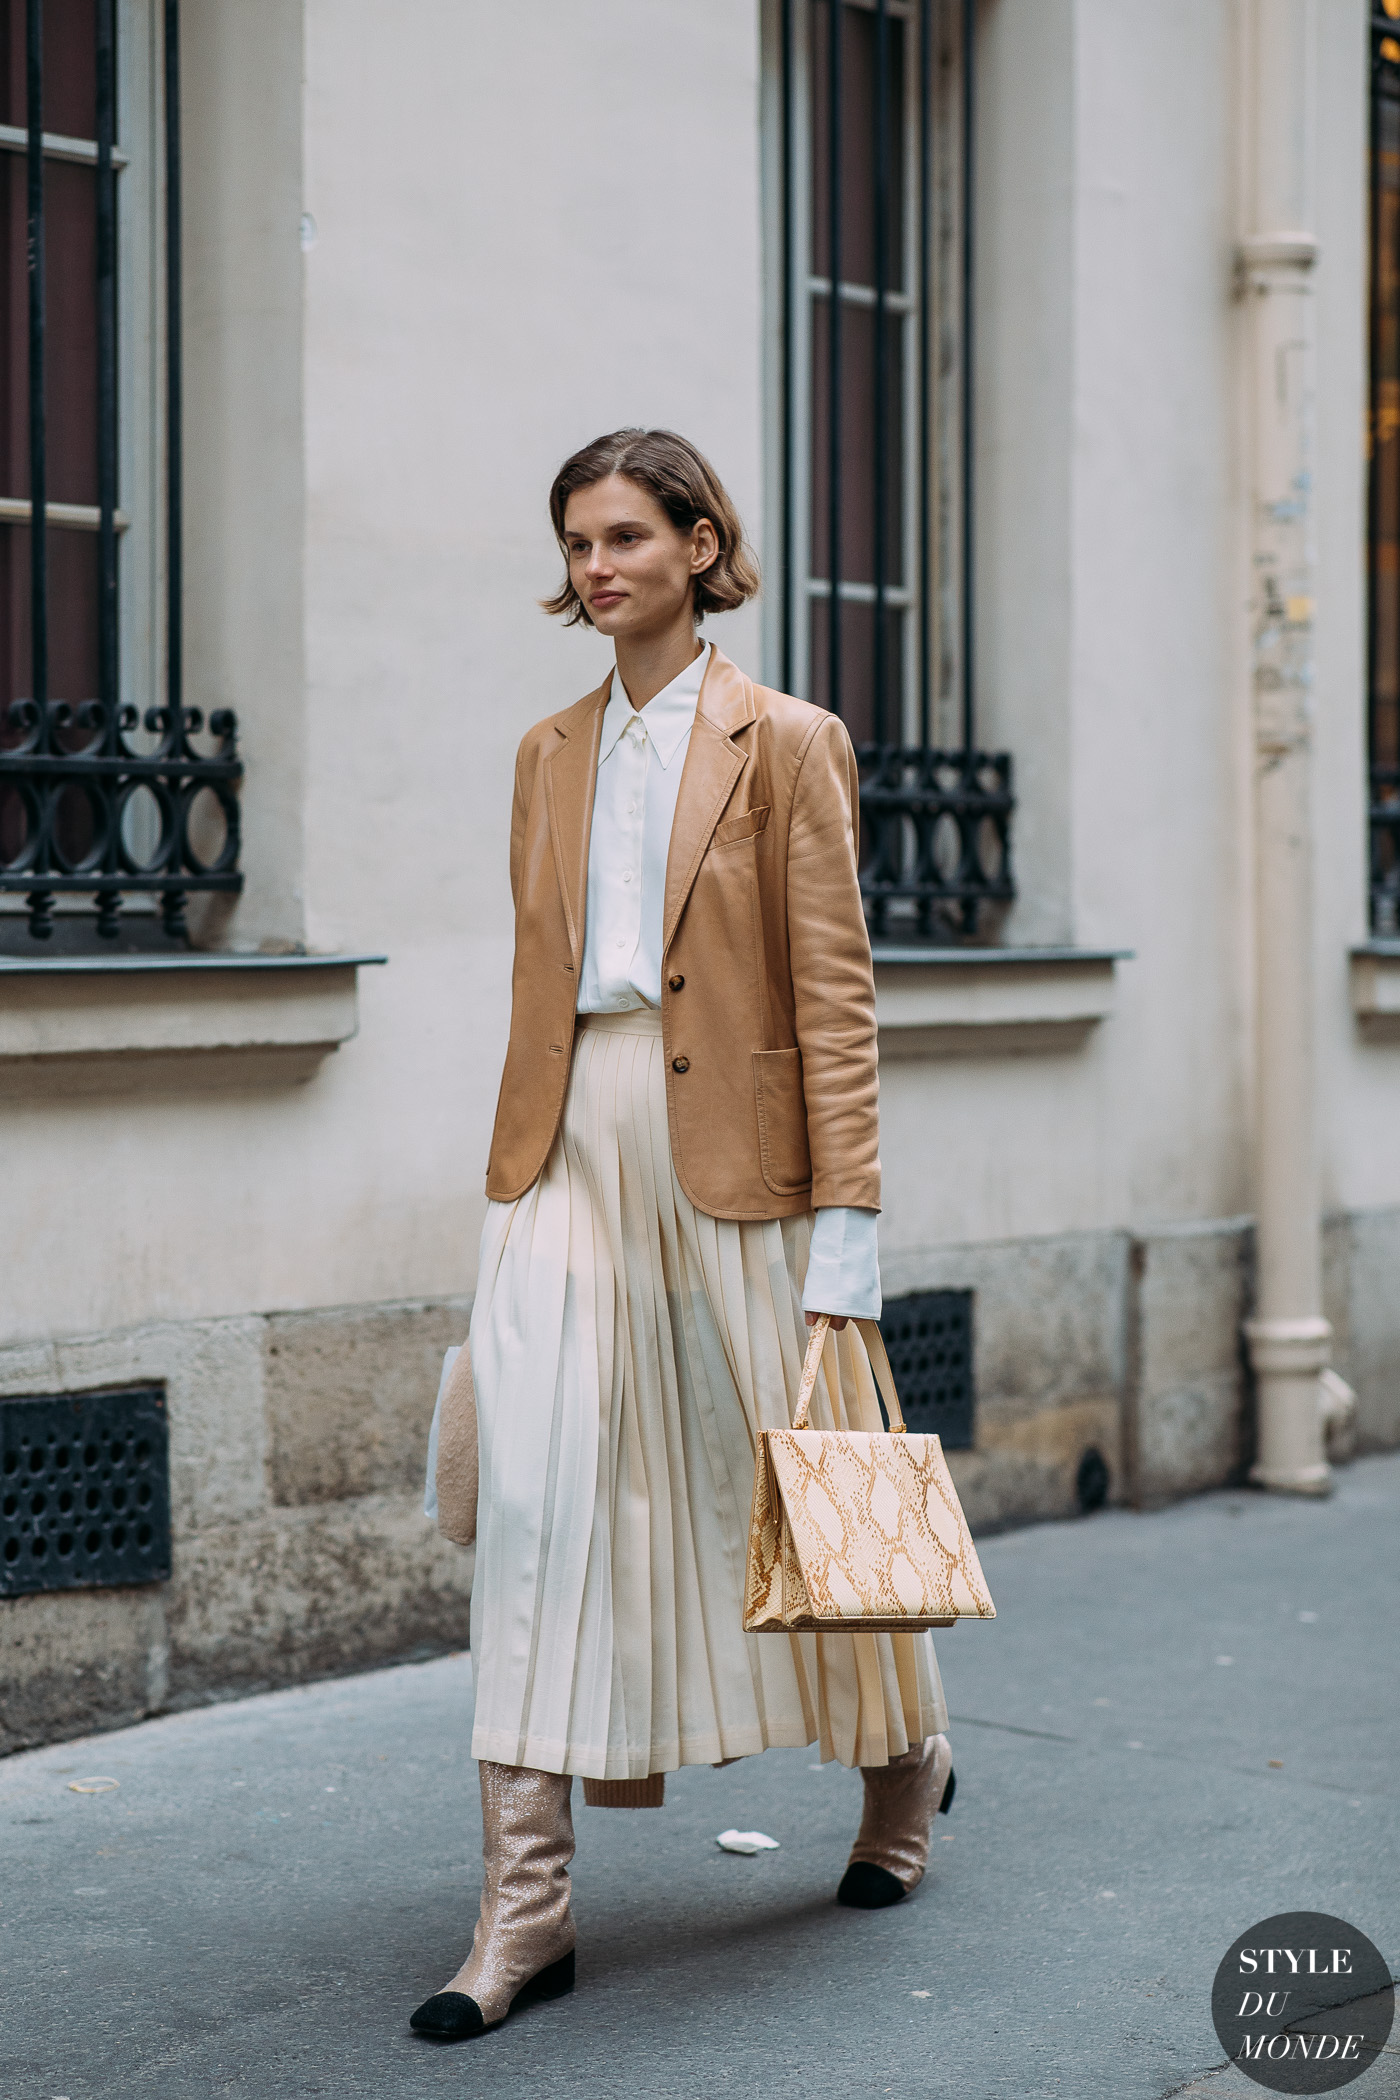 Giedre Dukauskaite by STYLEDUMONDE Street Style Fashion Photography FW18 20180305_48A8414